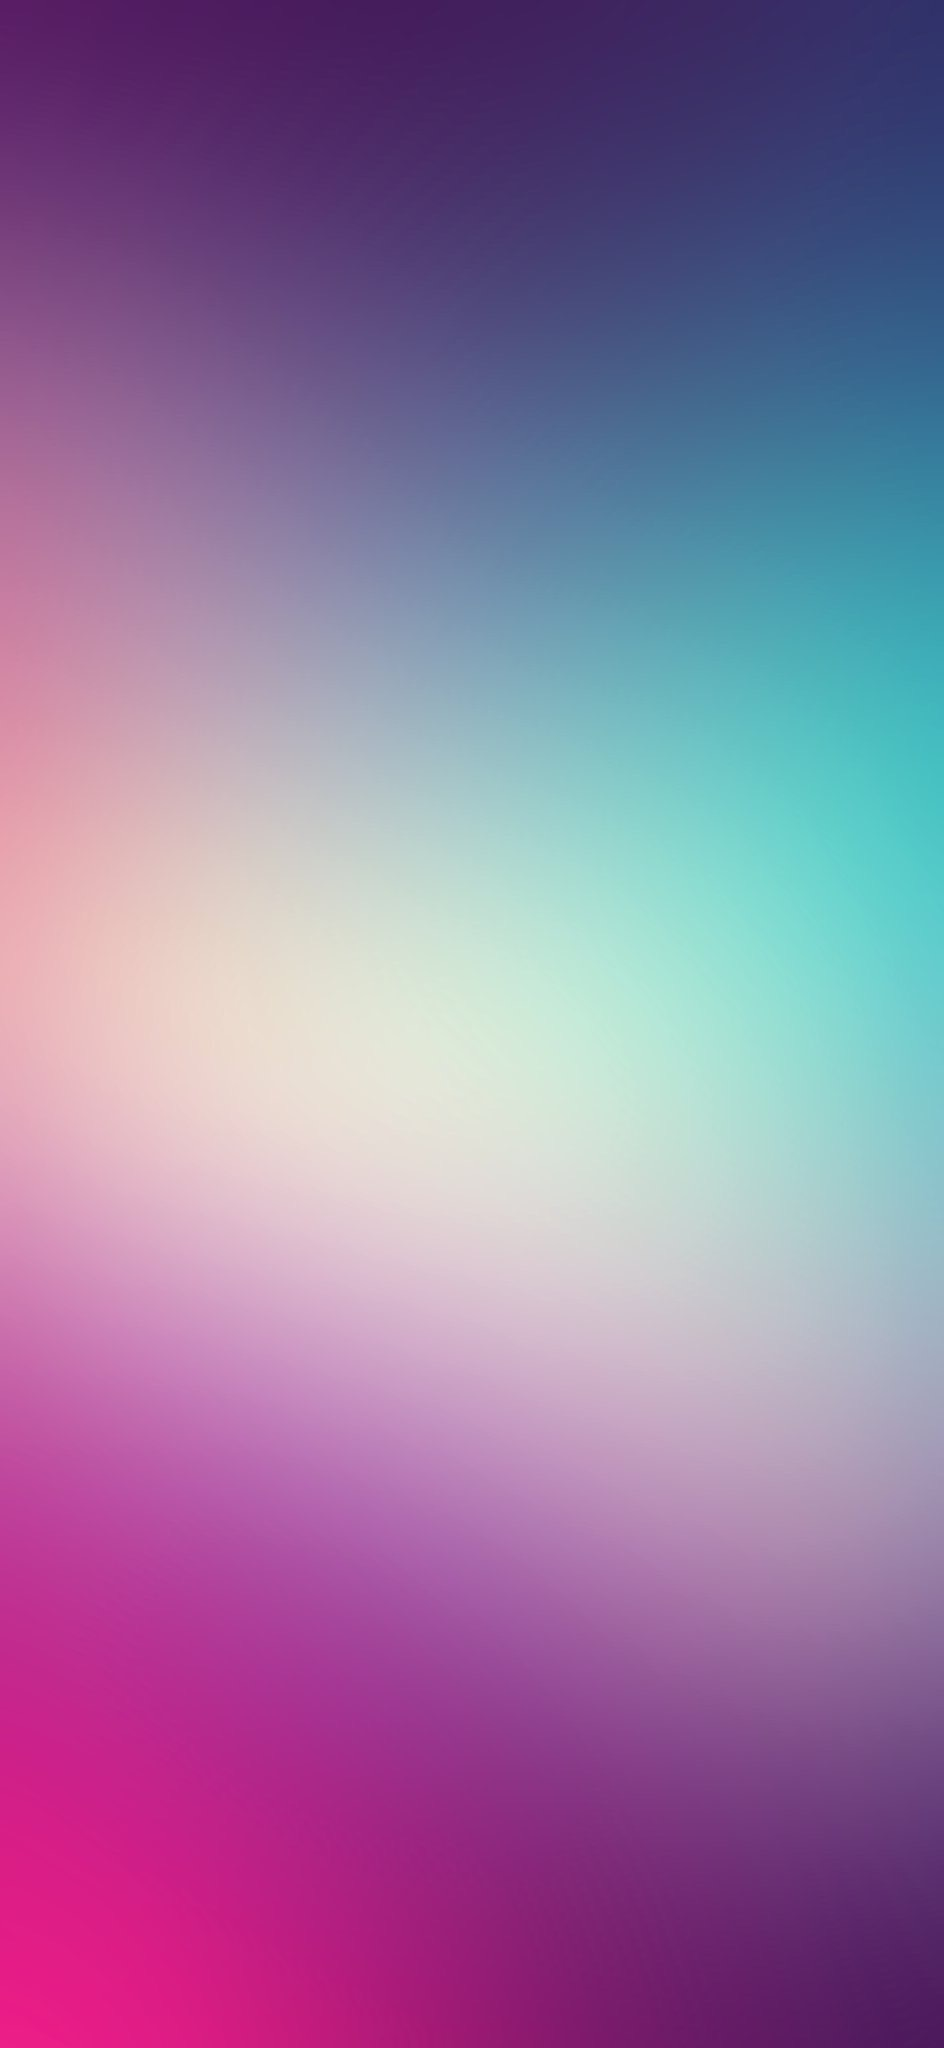 First Ios 14 Leaked Wallpaper From Health App Wallpapers Central